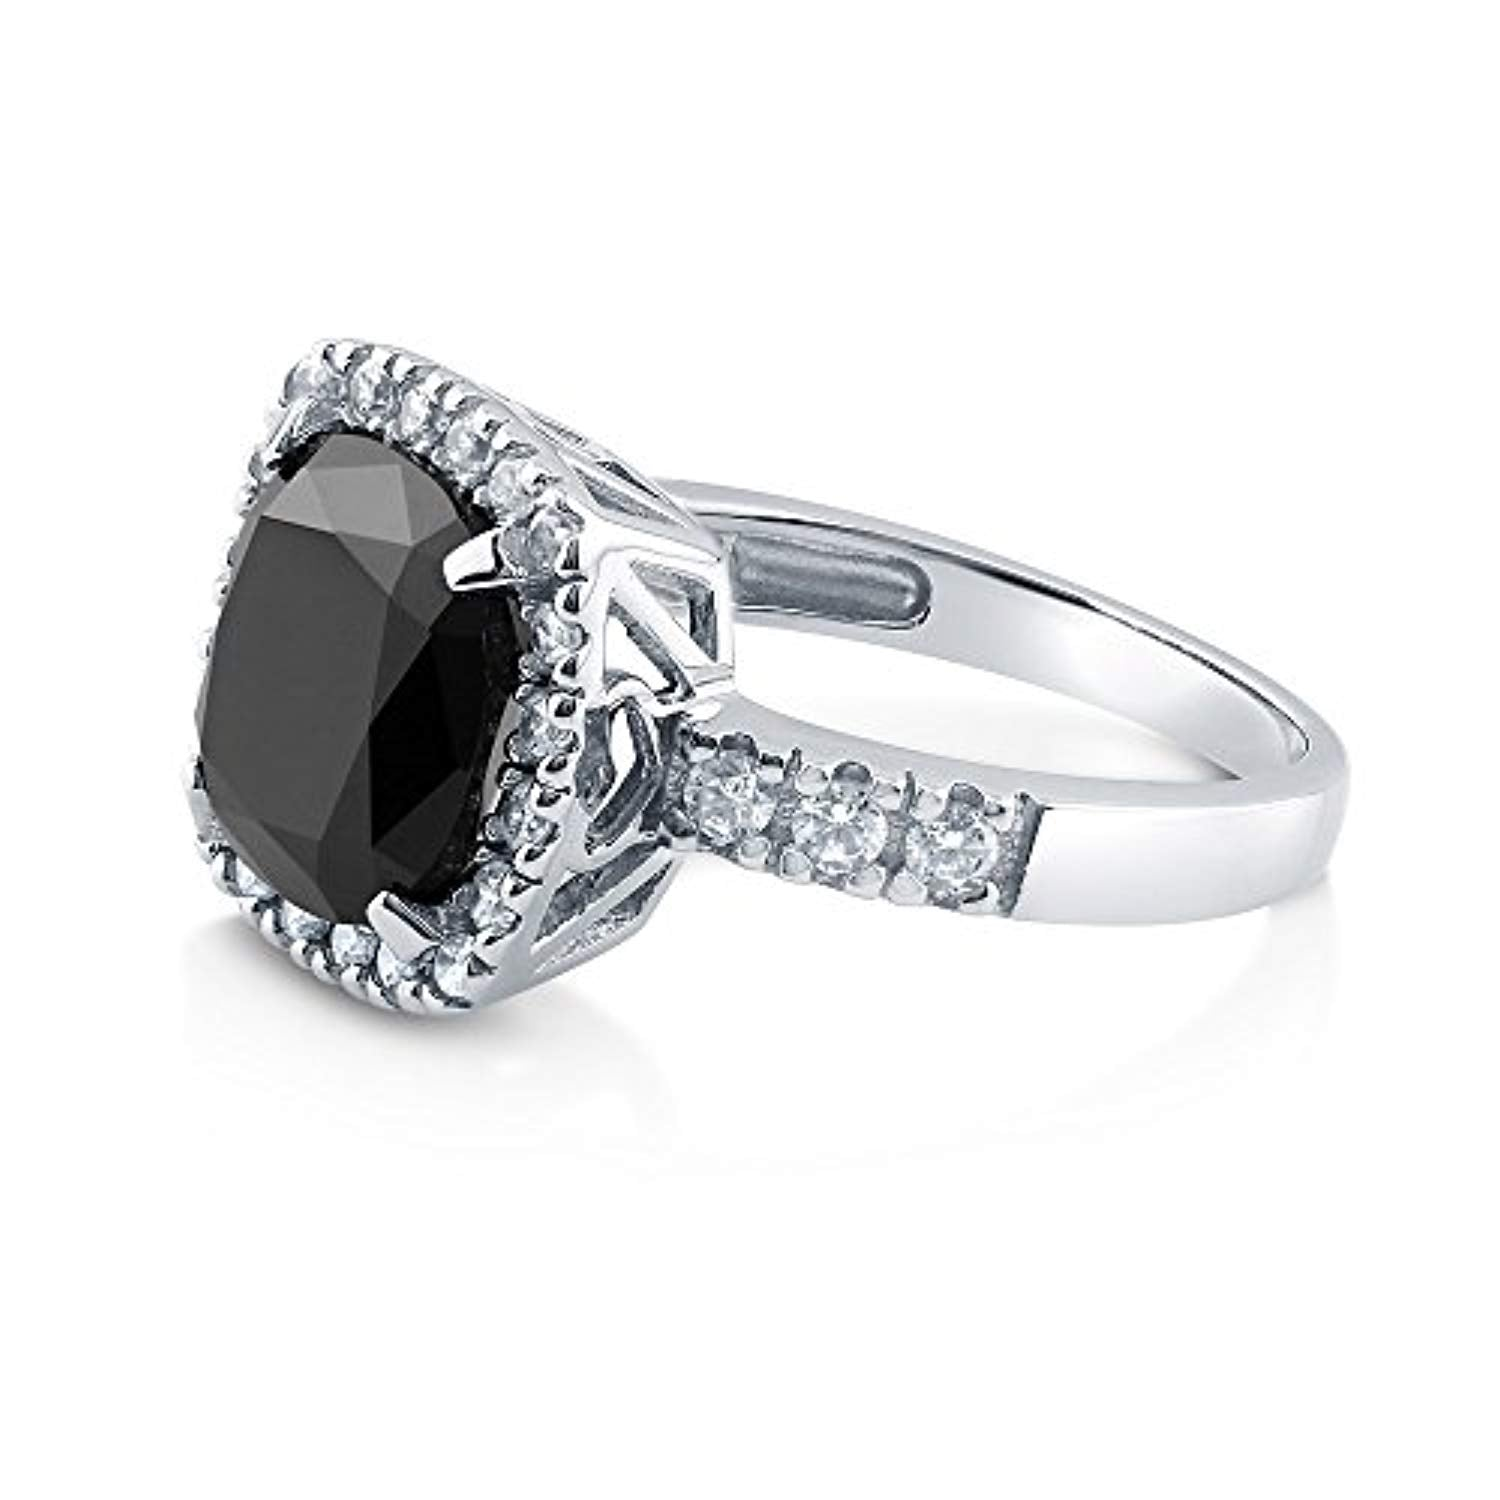 Rhodium Plated Sterling Silver Black Cushion Cut Cubic Zirconia CZ Statement Halo Cocktail Fashion Right Hand Ring